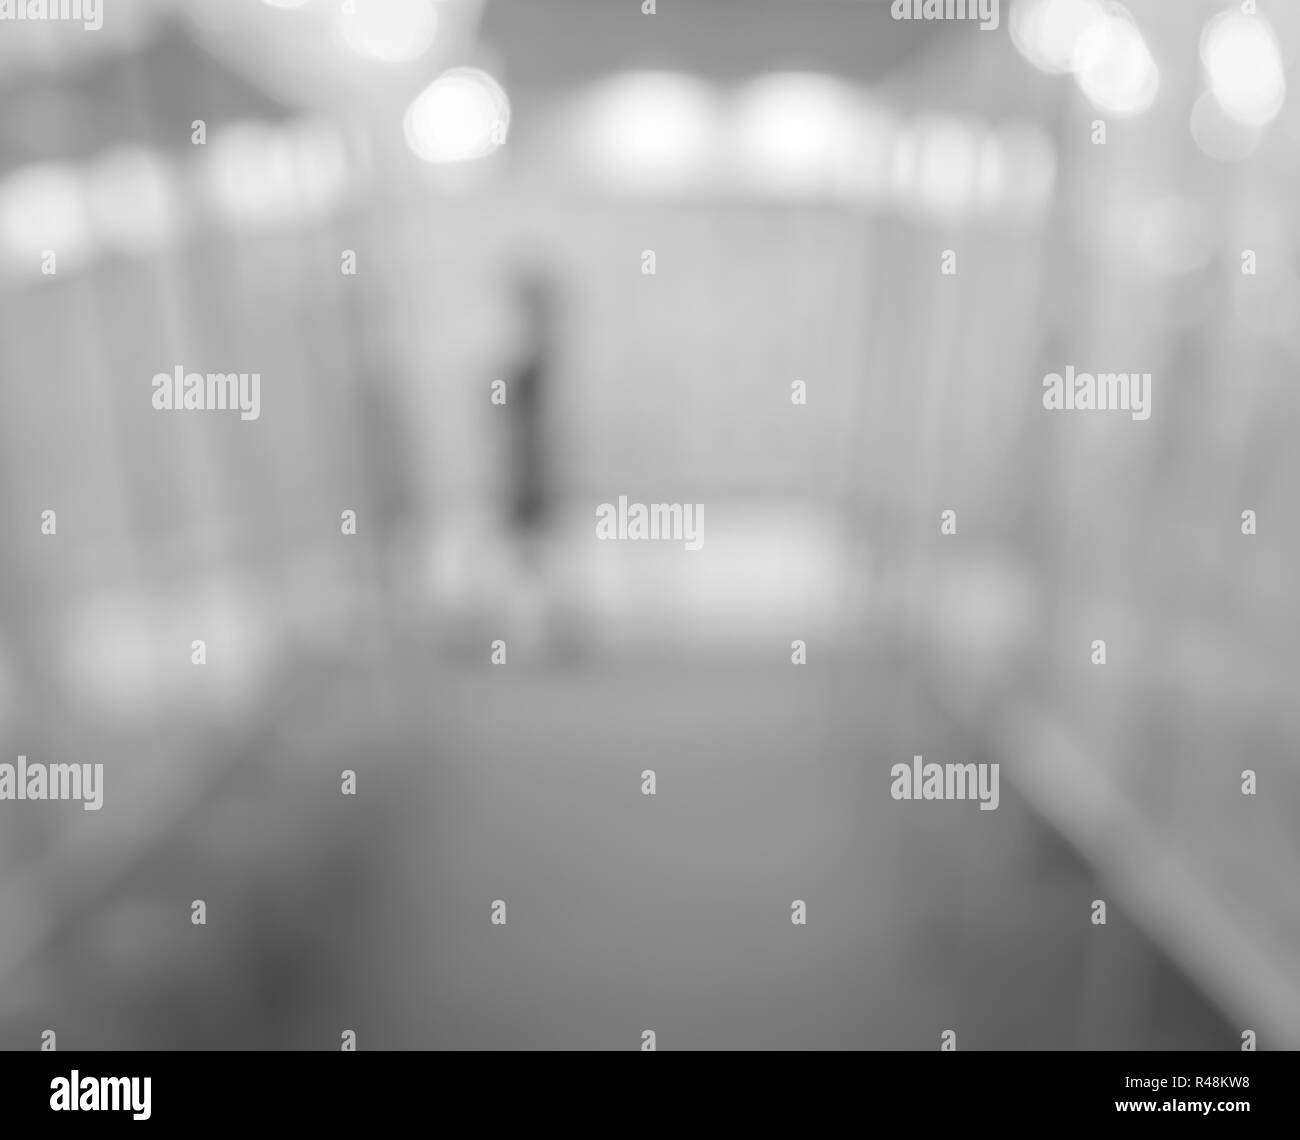 Abstract blurred art gallery - Stock Image